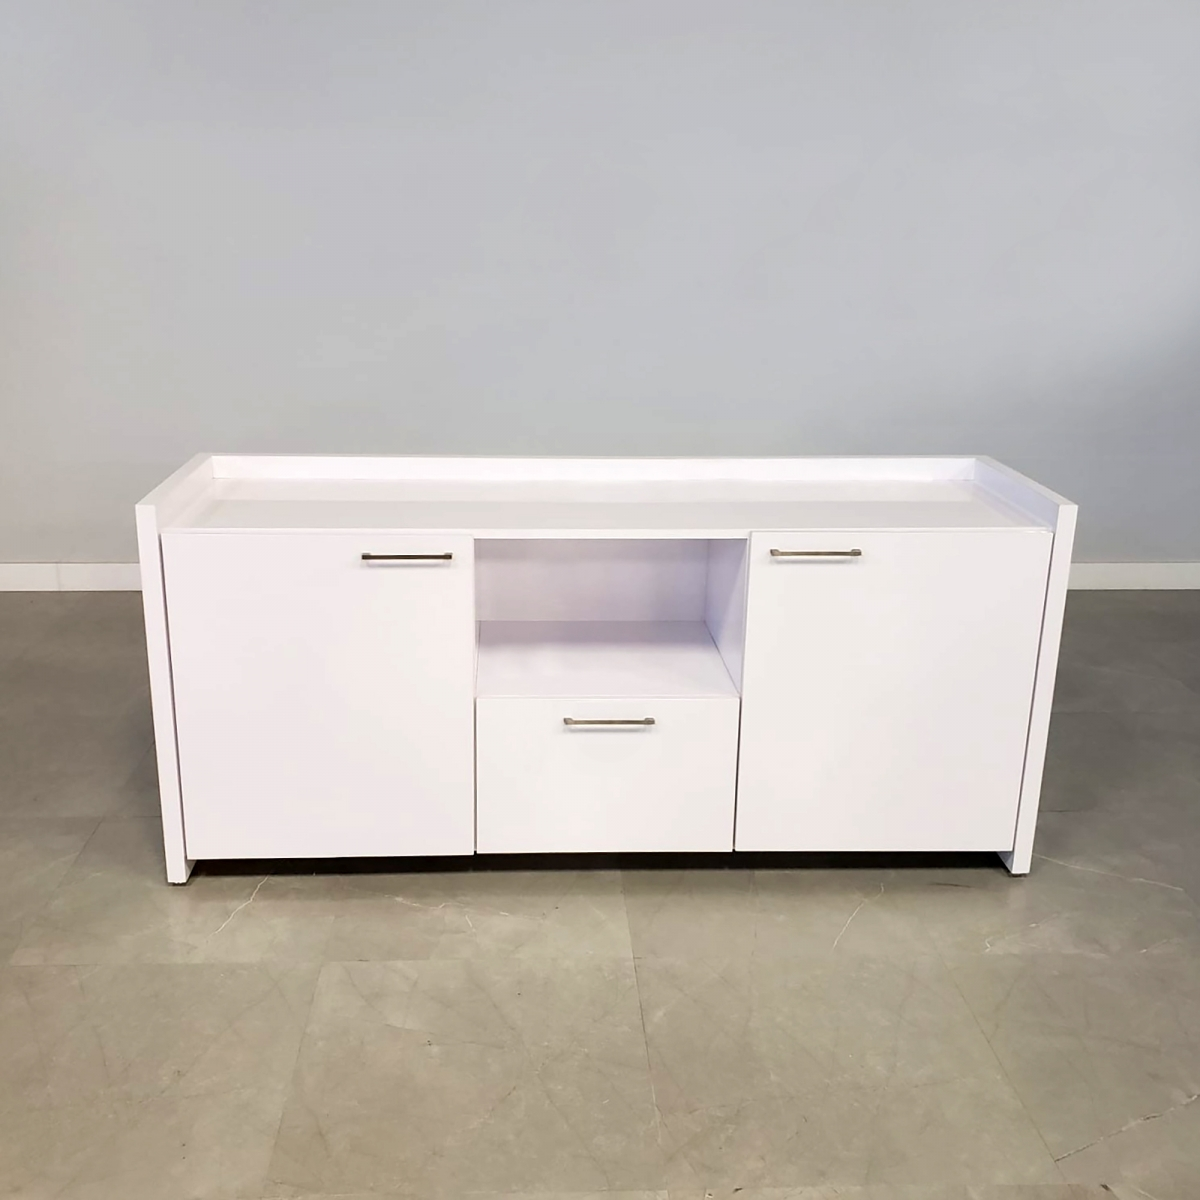 Aspen Executive Storage Credenza